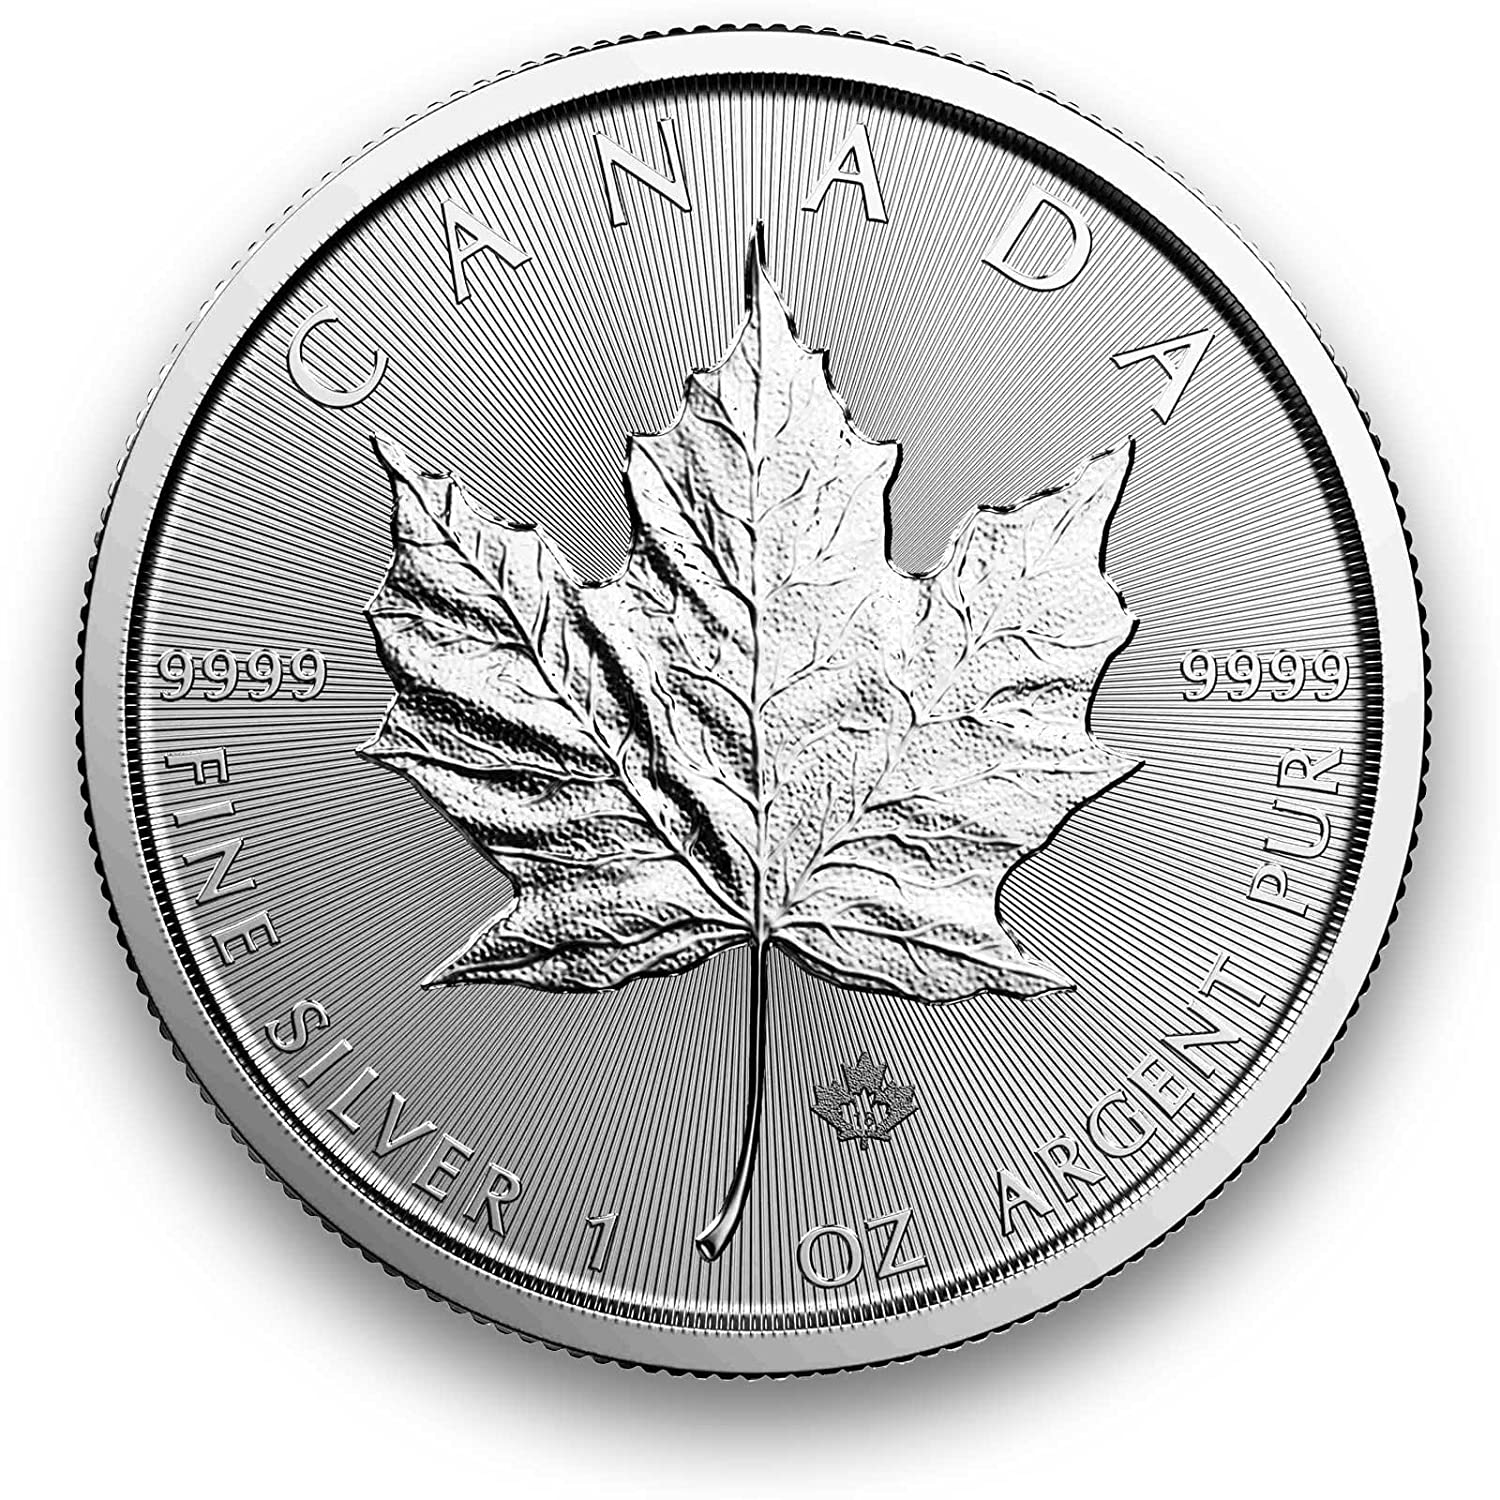 Moneda de Plata Maple Leaf 1 onza – Set estampada 1er 10 o Juego de 25, 2017493-006